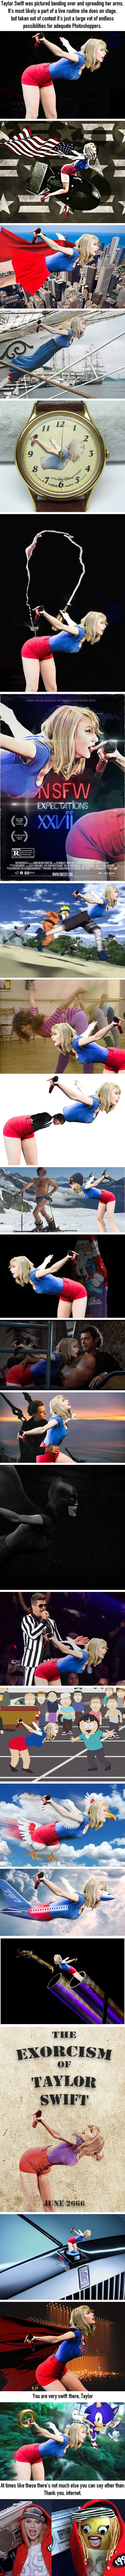 Photoshop Battle Of Taylor Swift Is Absolutely Outstanding